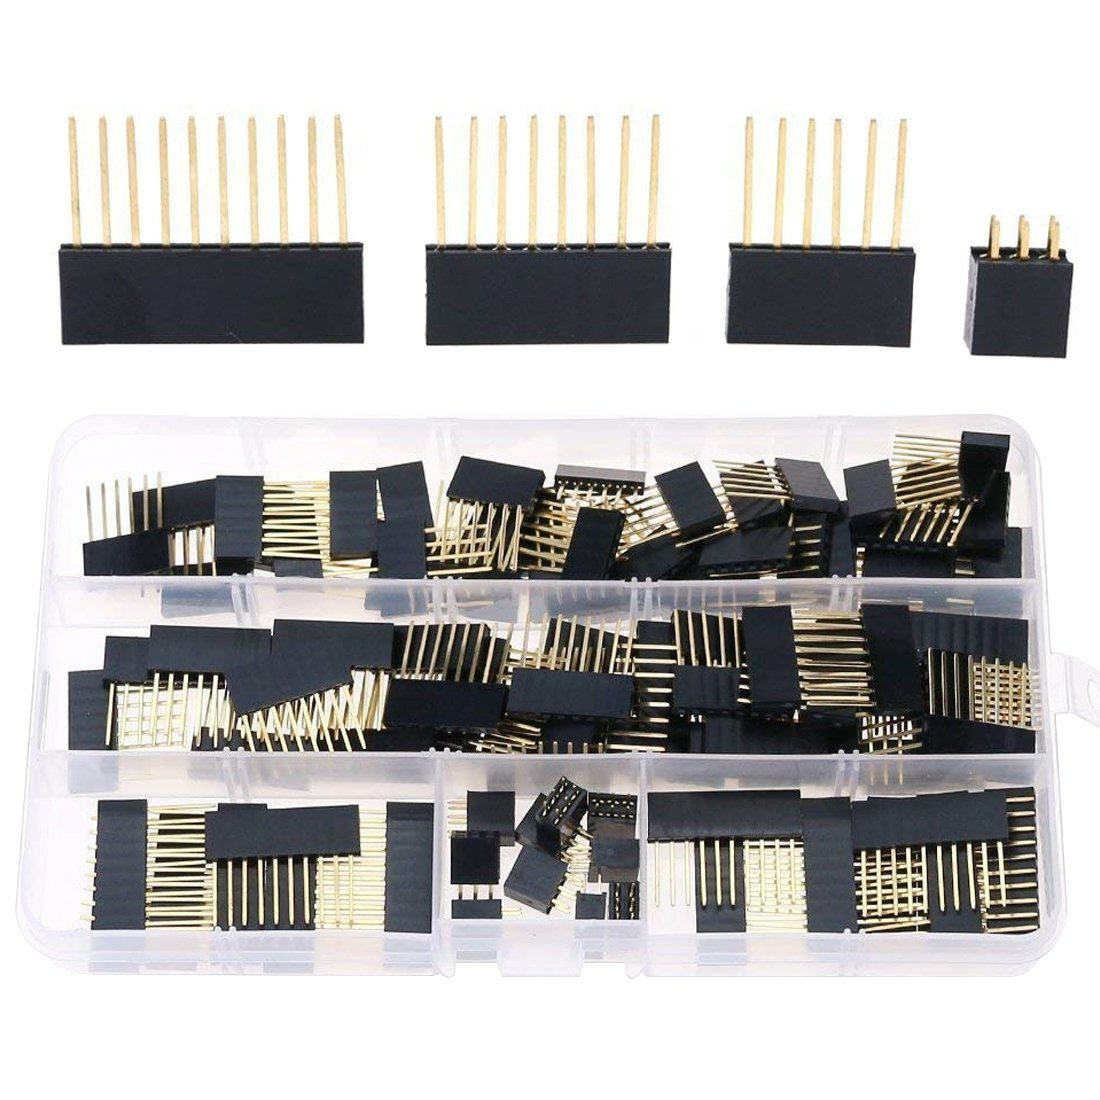 Hilitchi 110pcs 6 / 8 / 10 / Double Row 3-Pins 2 54mm Arduino Stackable  Shield Header Assortment Kit